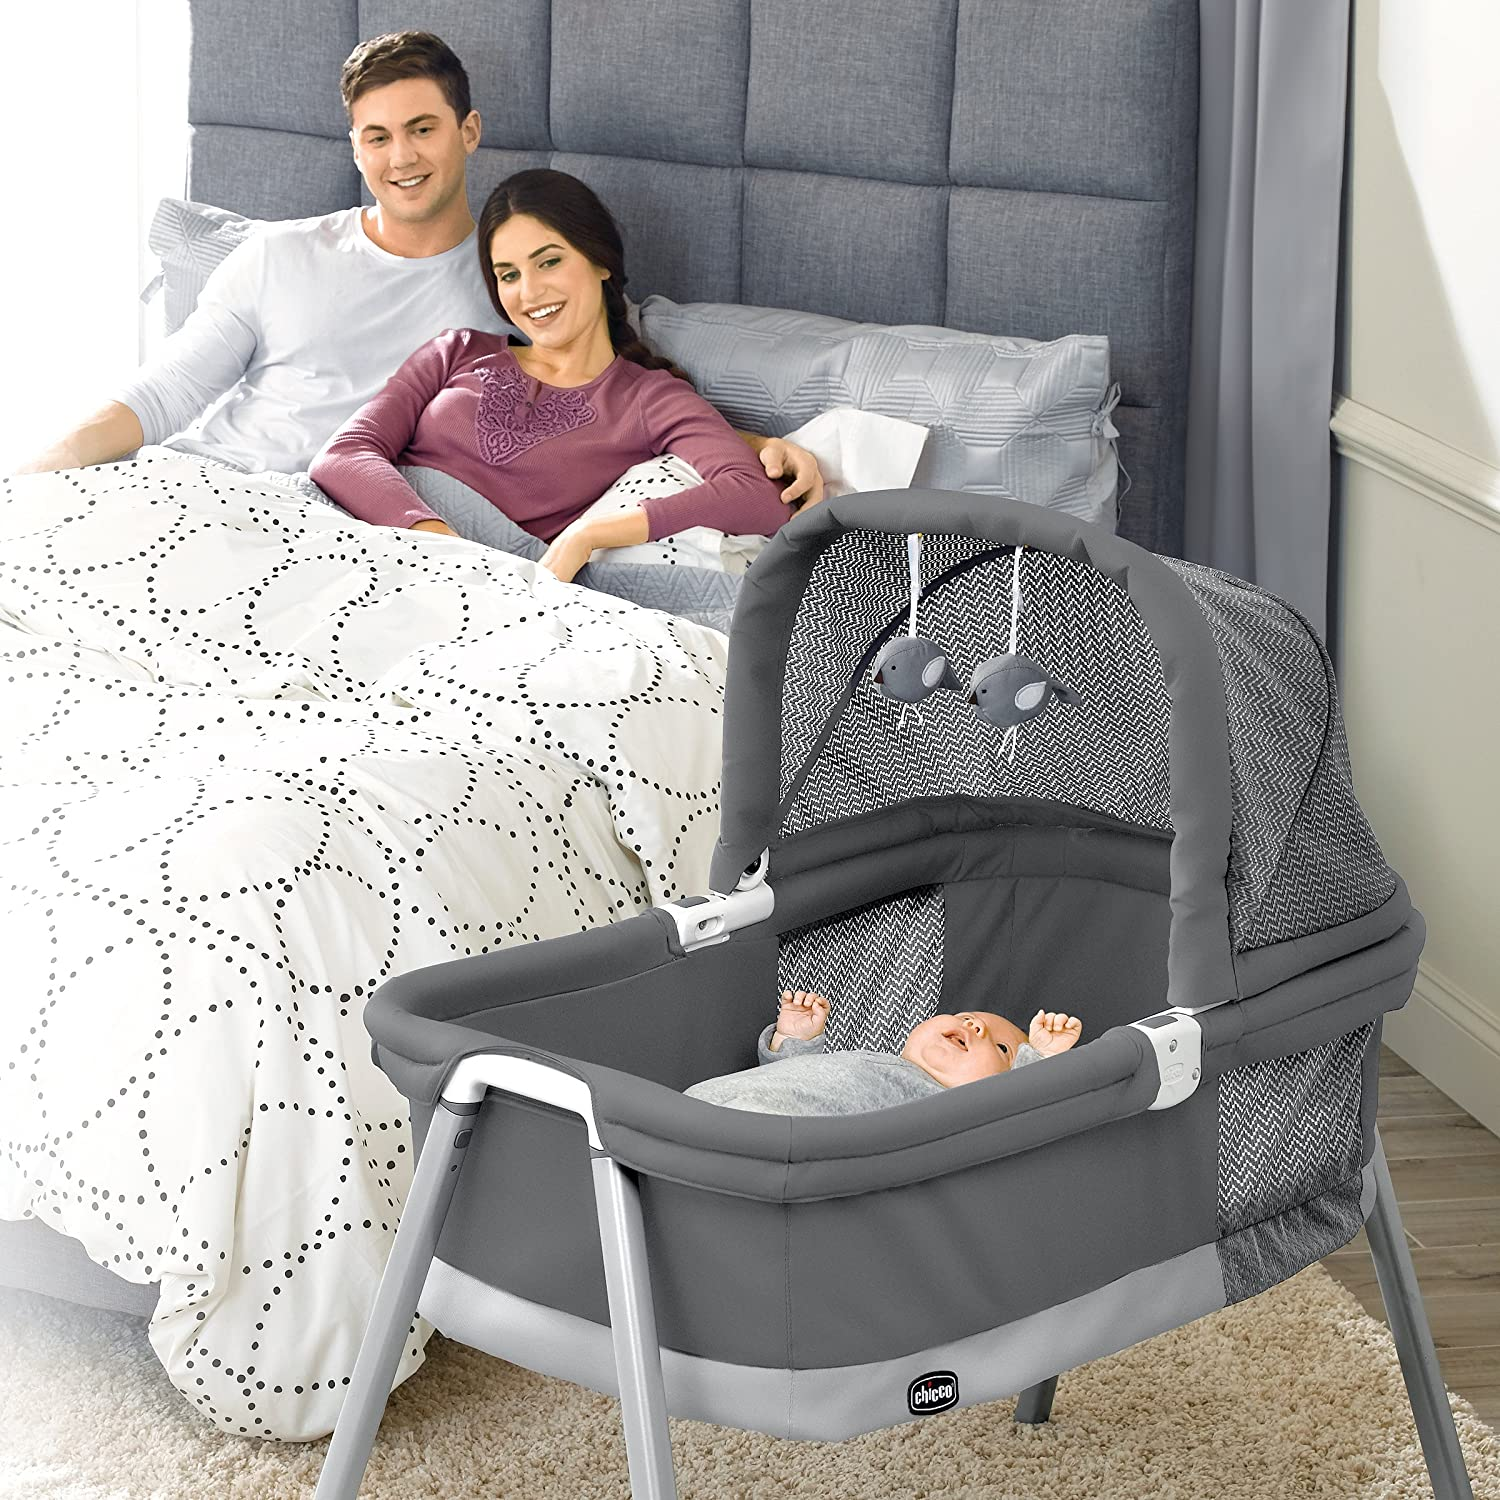 Bassinets & Cradles Chicco Lullago Deluxe Portable Bassinet Padded Mattress Snap-on Legs Charcoal